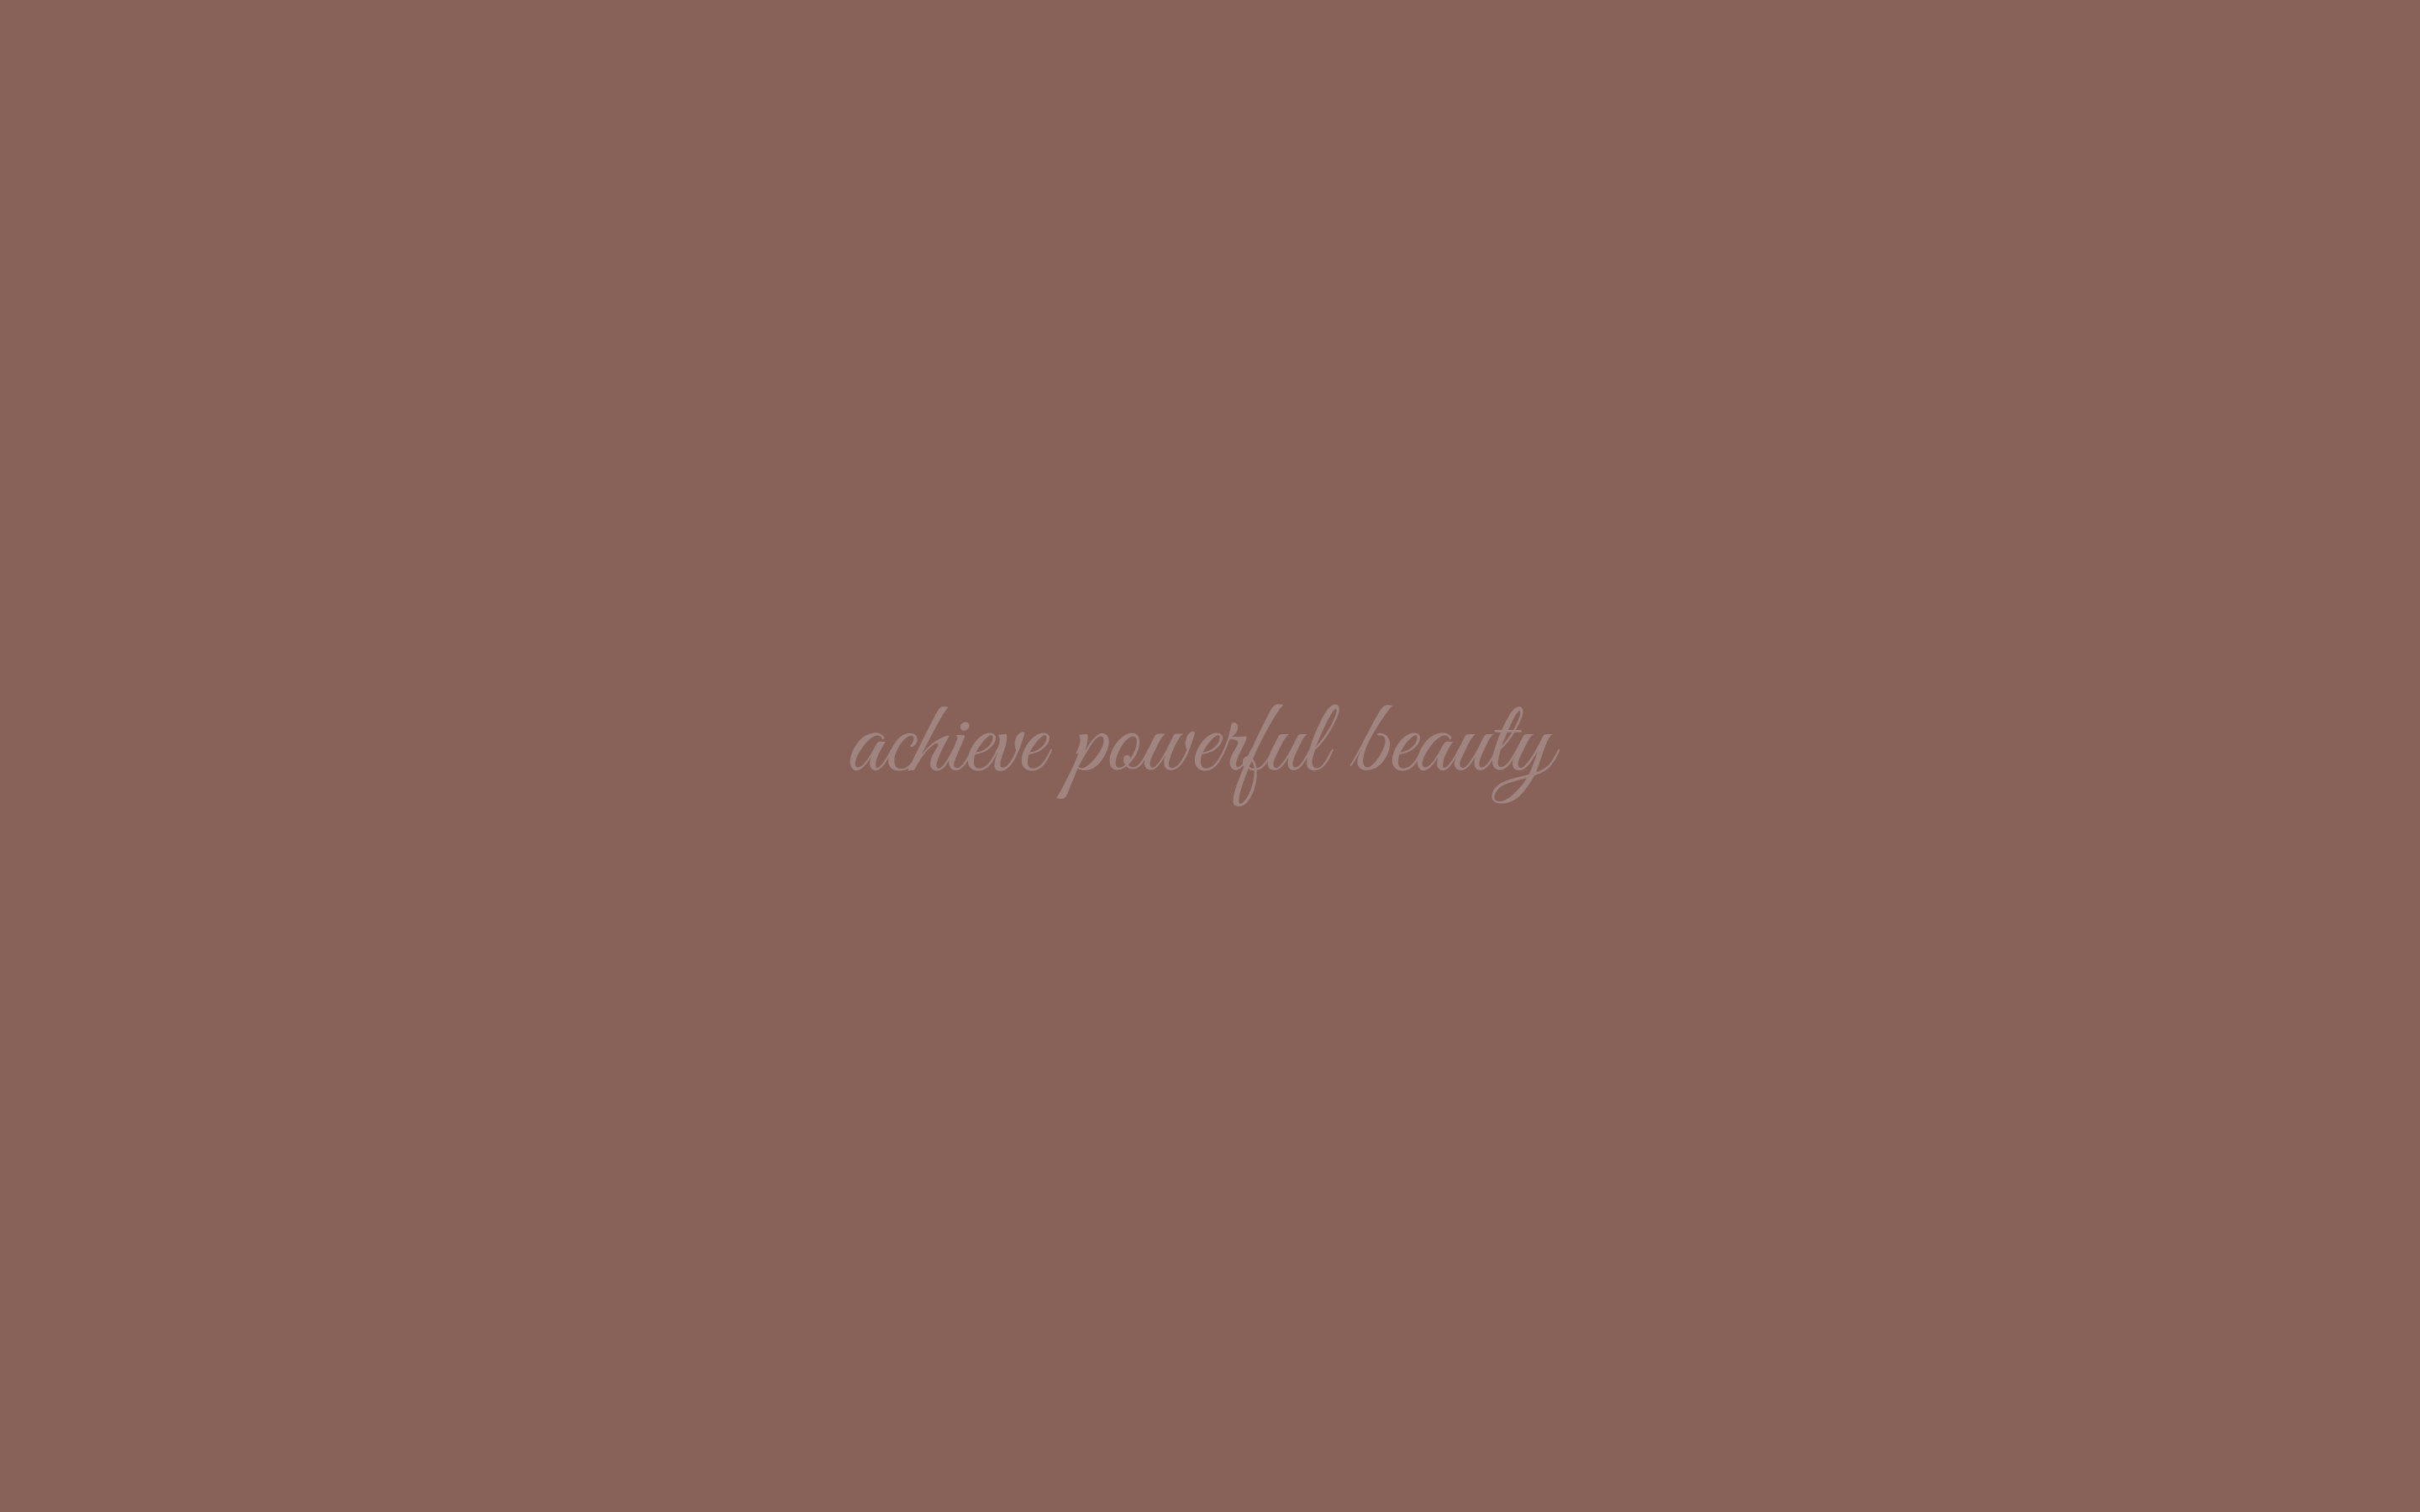 Beige Aesthetic Wallpapers Wallpaper Cave